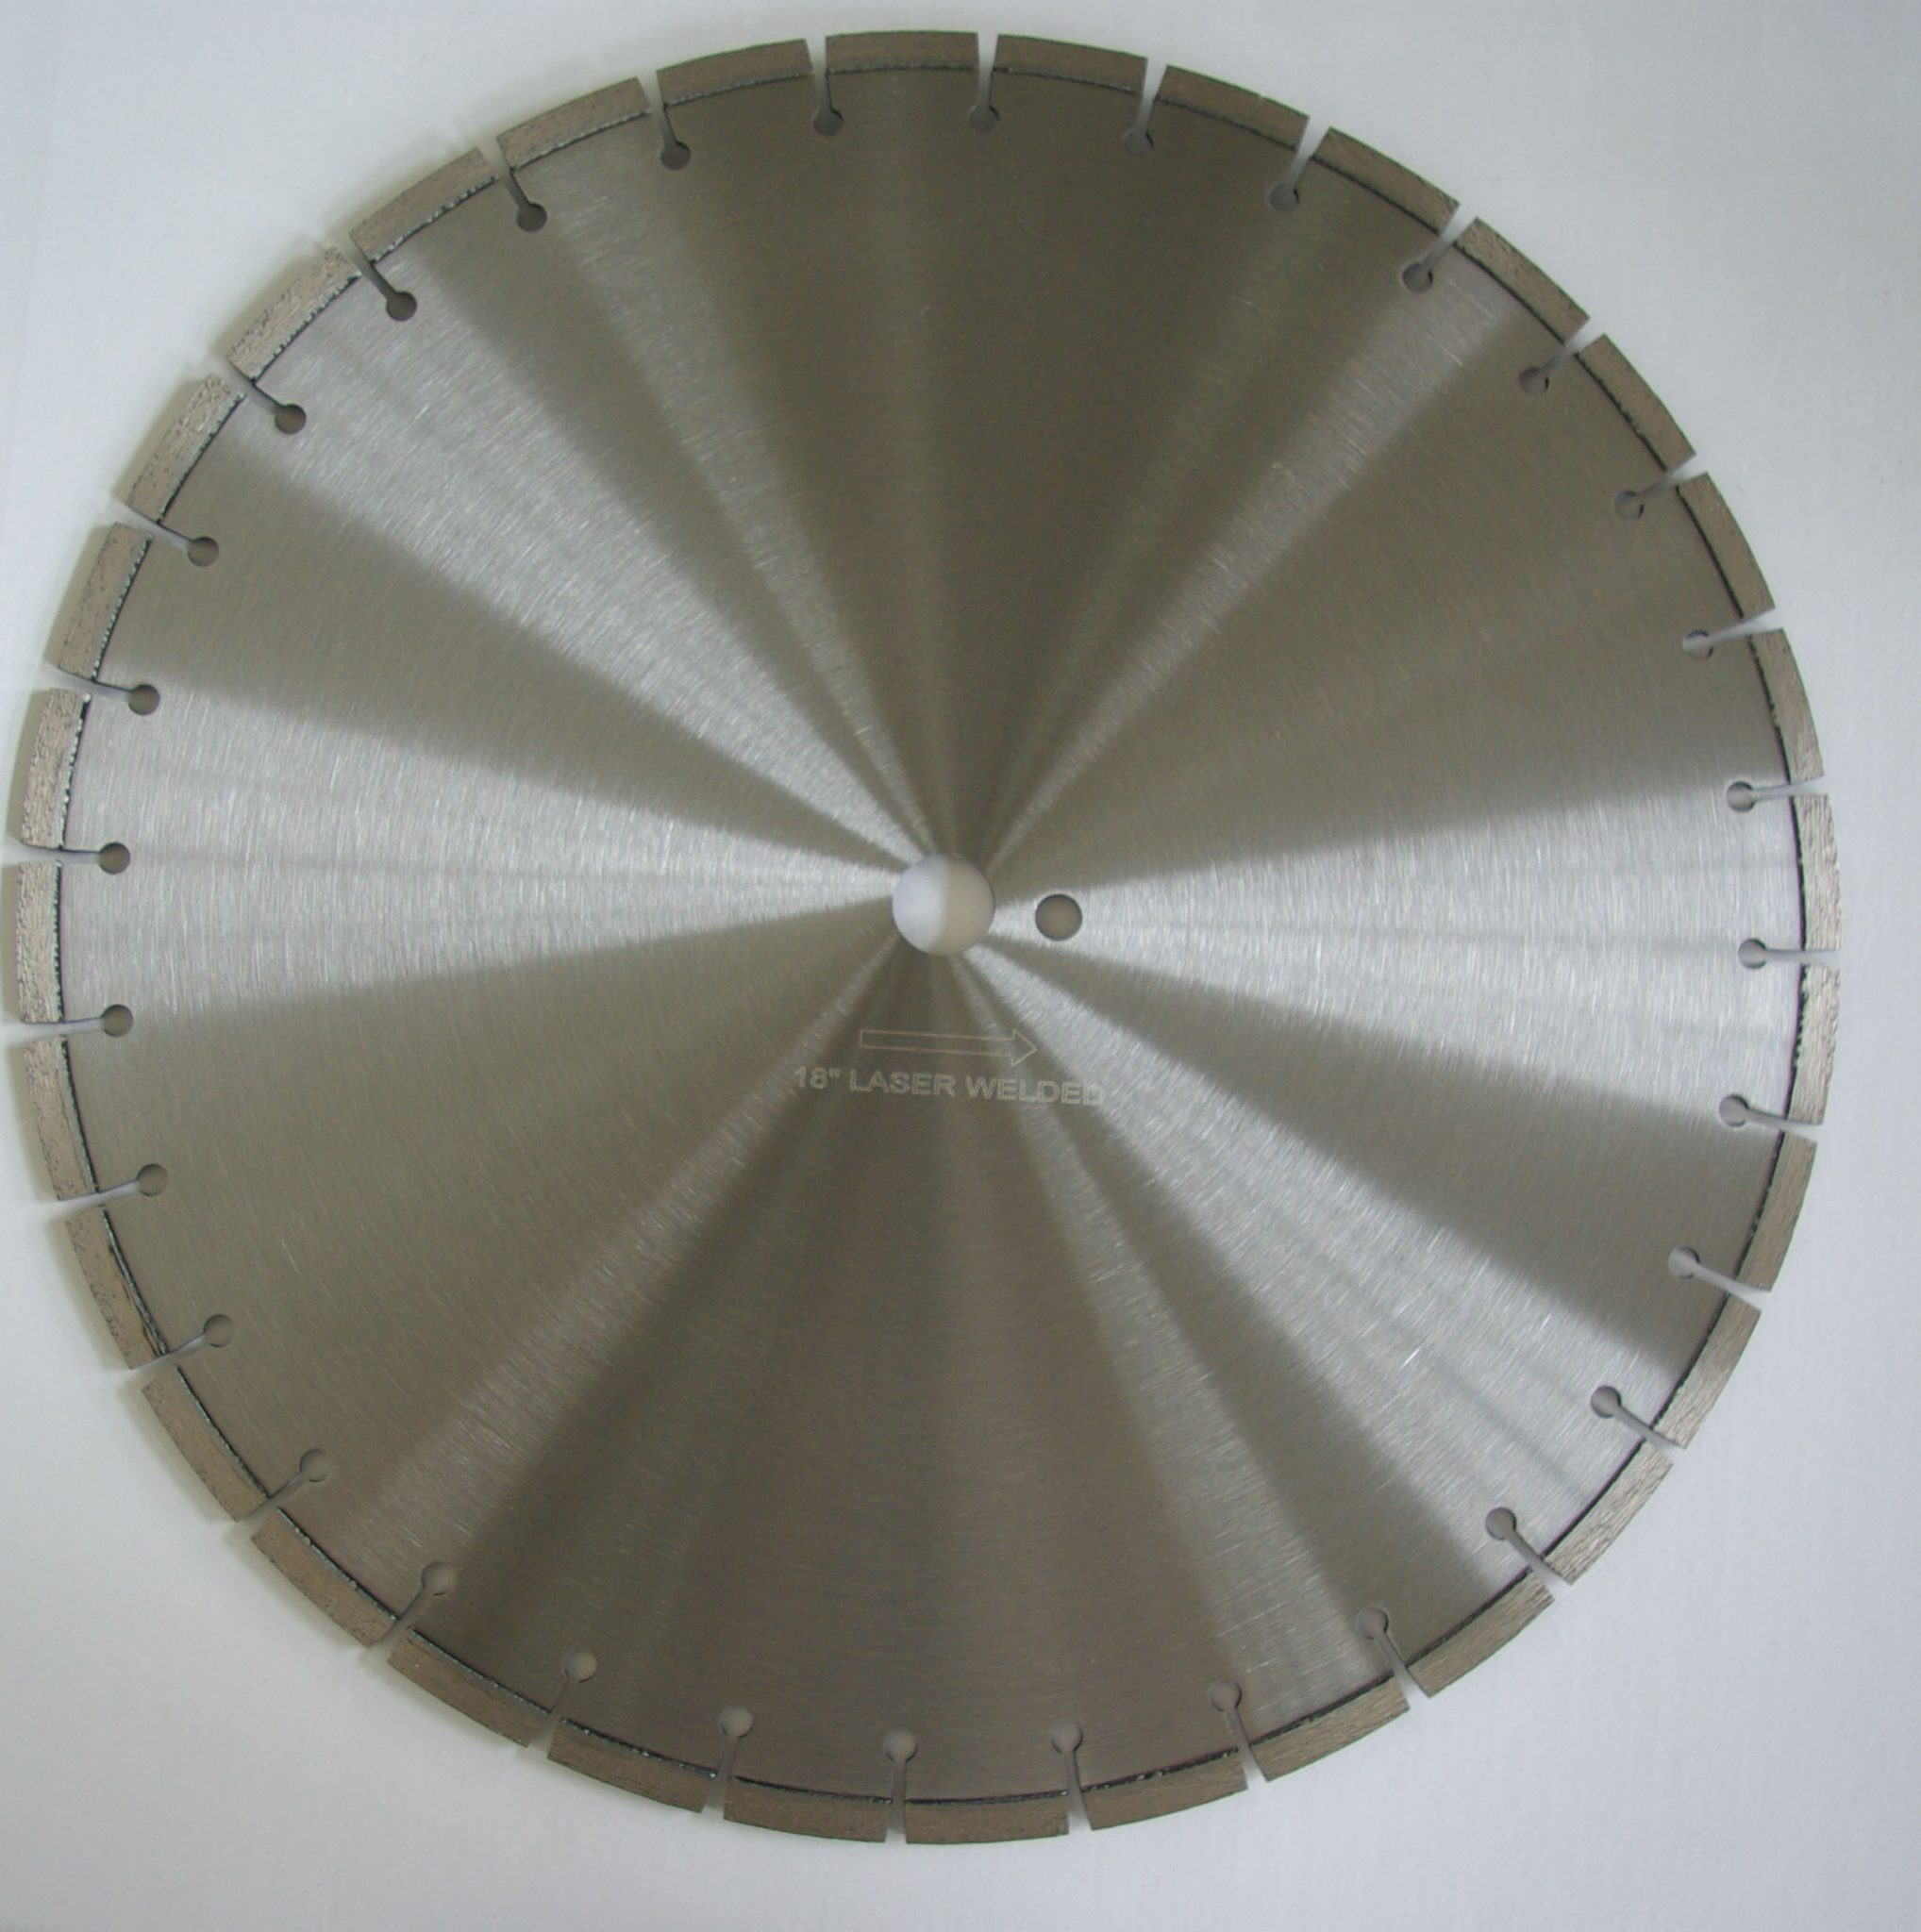 450mm saw blade for concrete